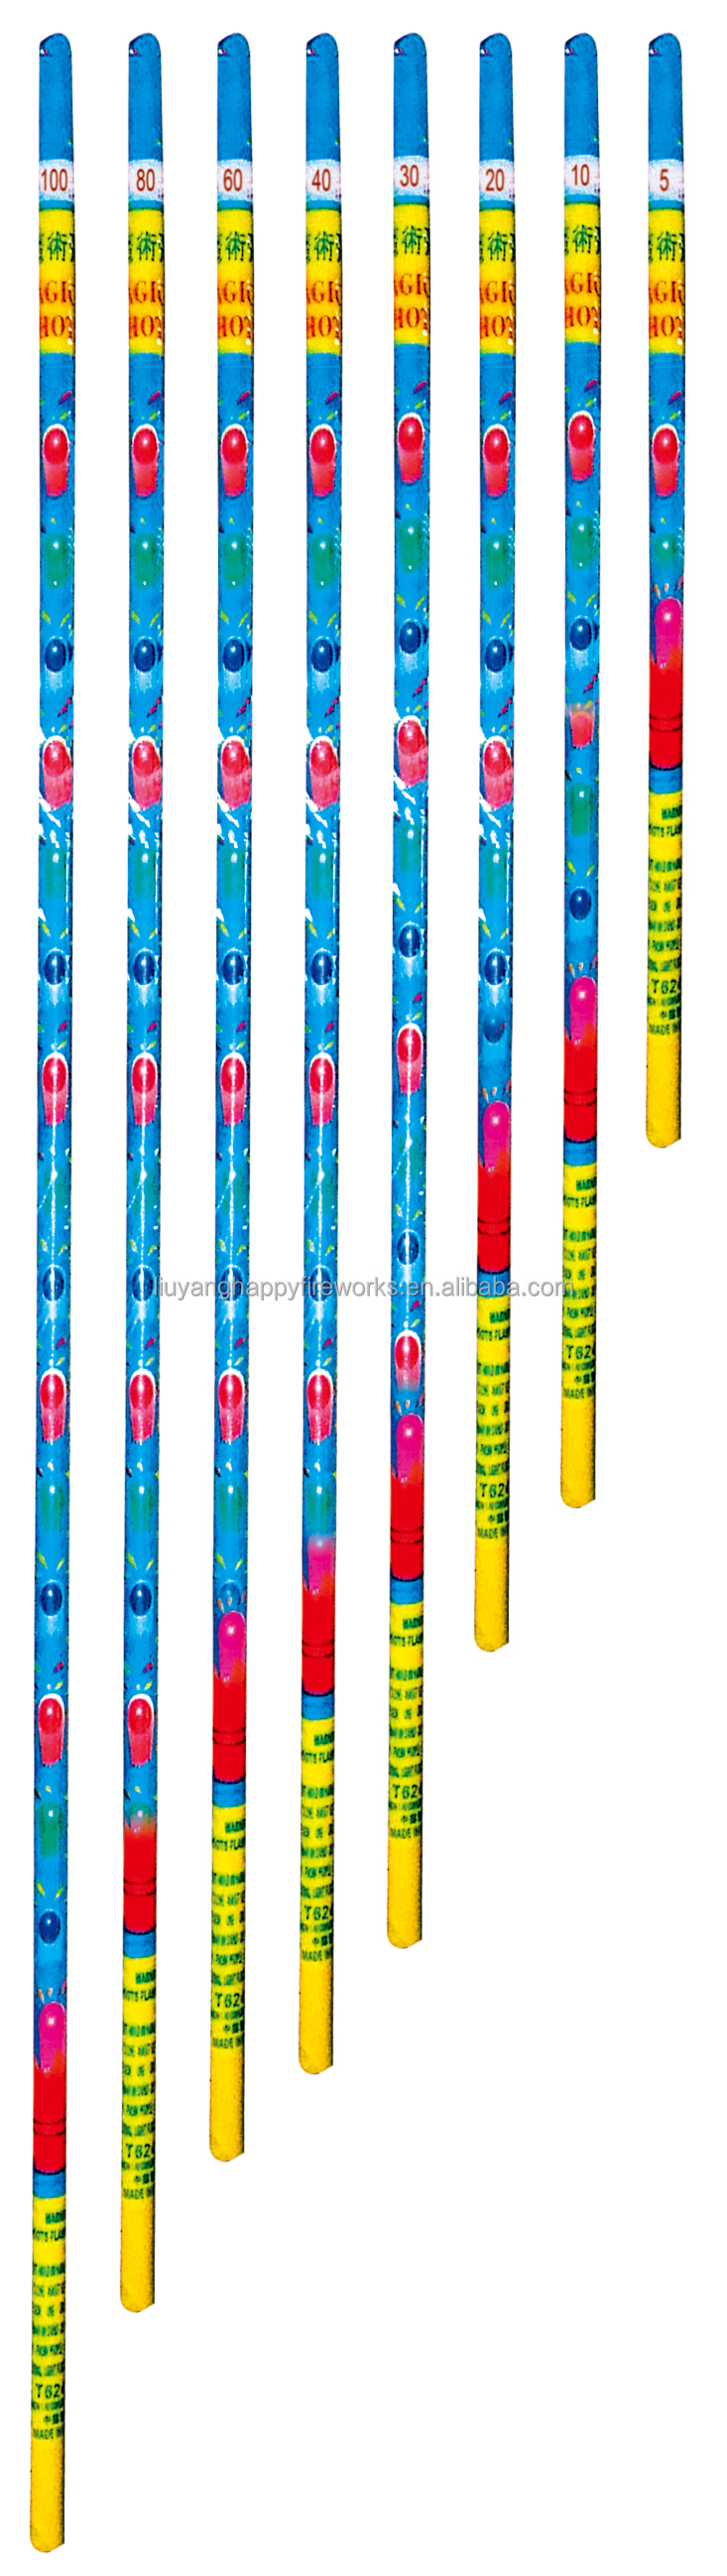 T6242 roman candle magic shots barrage fireworks